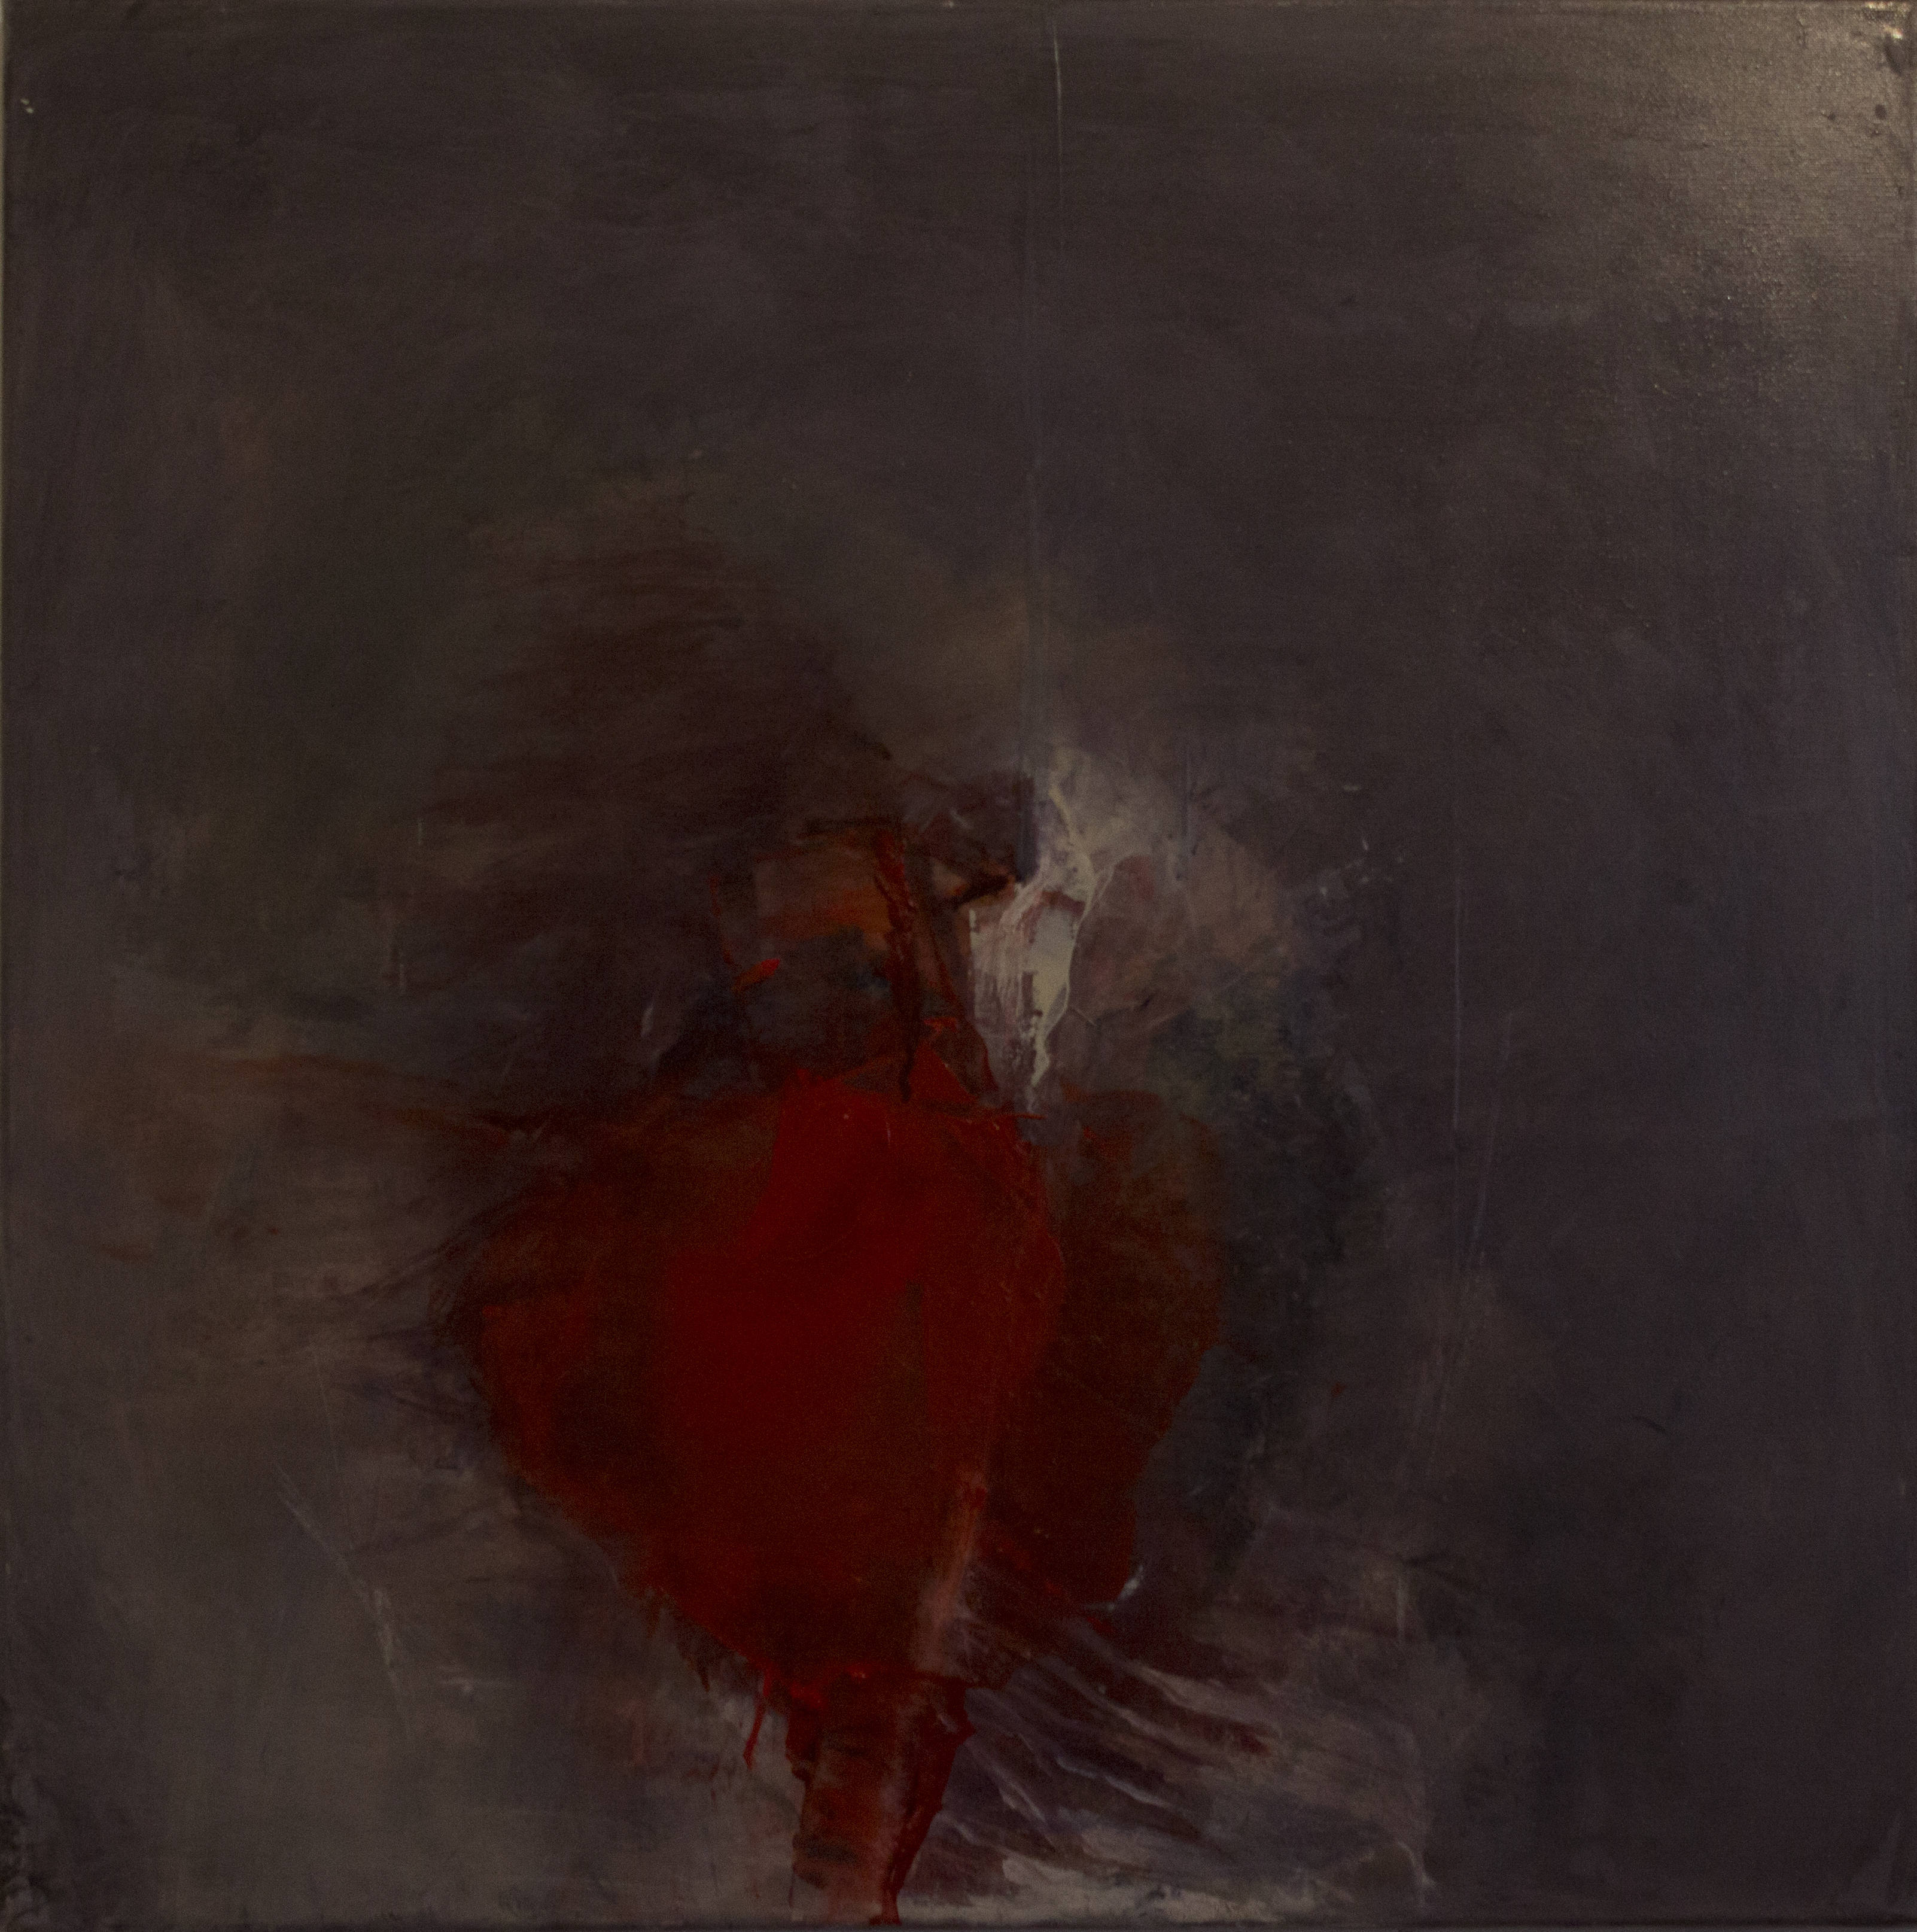 Jules Allan - Being 2 small red shape, 50cm x 50cm, oil on canvas